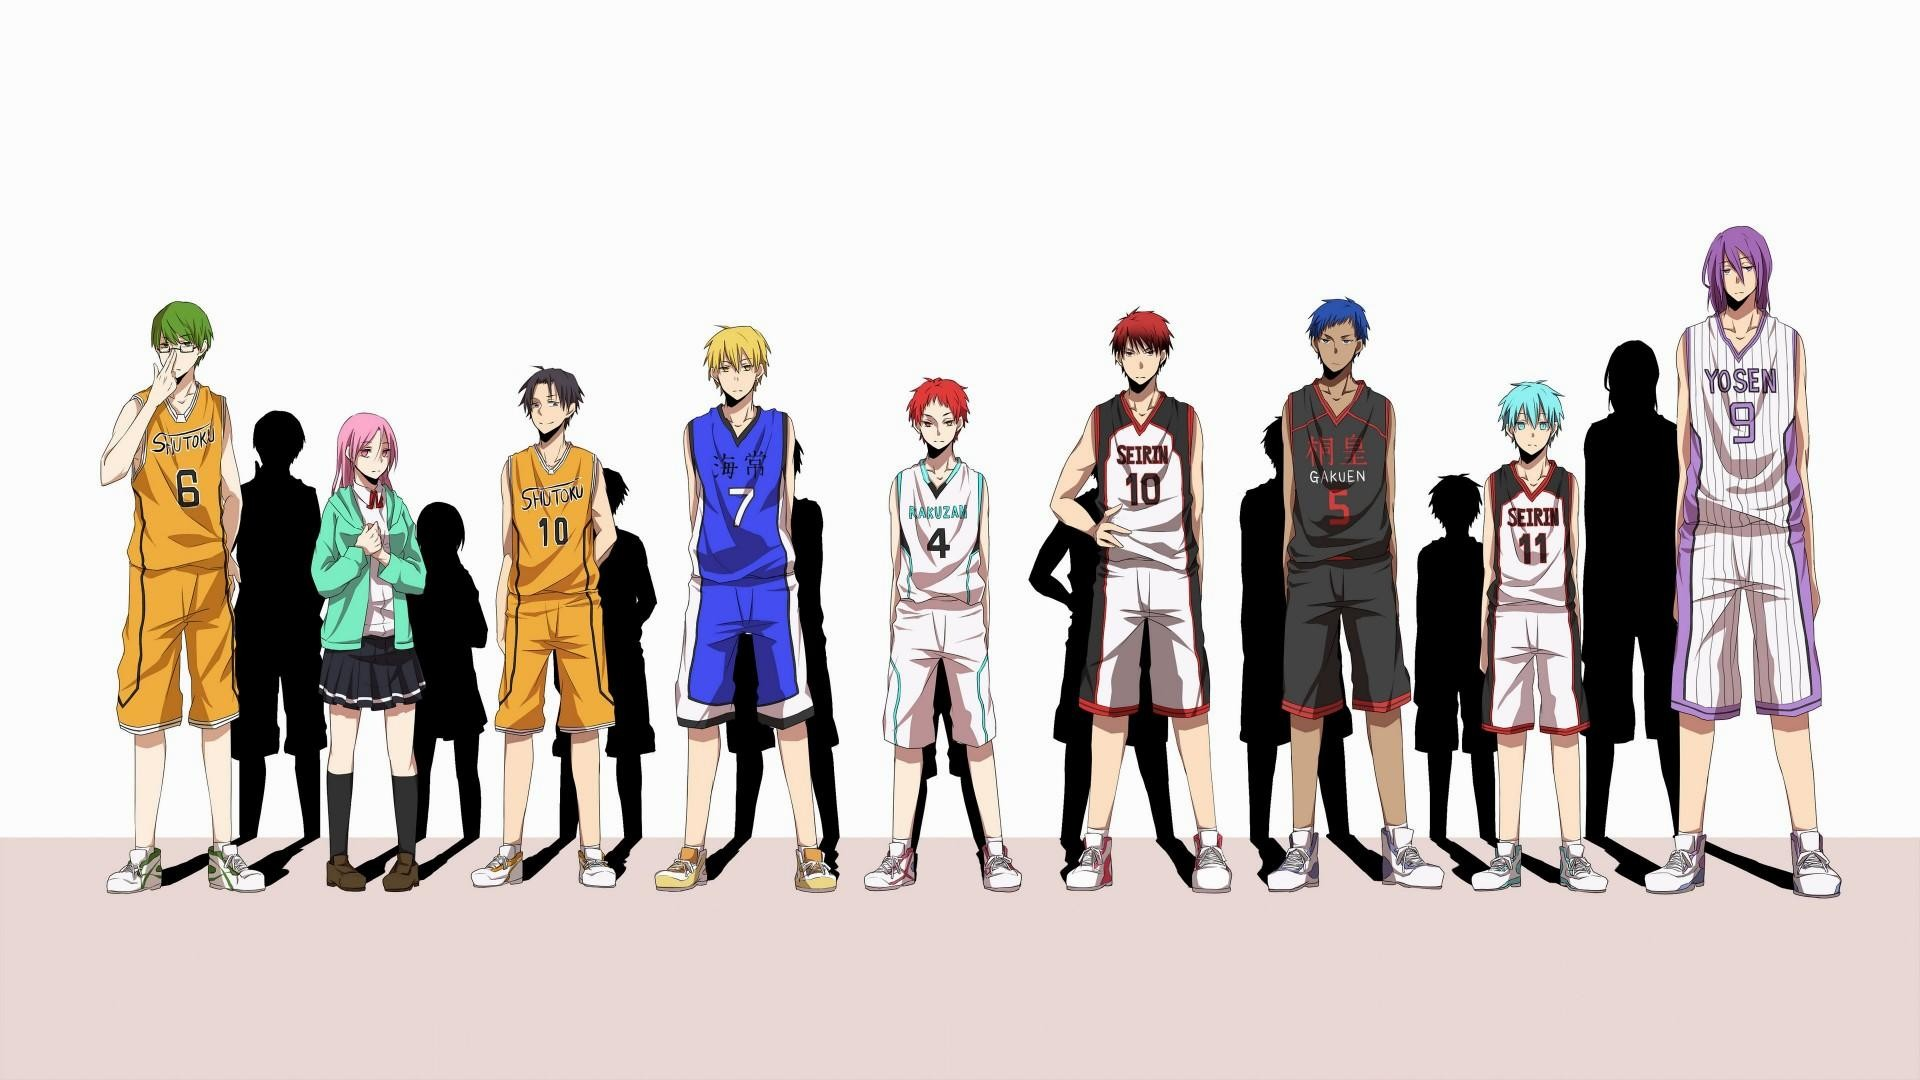 1920x1080 Kuroko-no-Basket-1080p-Background-http-and-backgrounds.